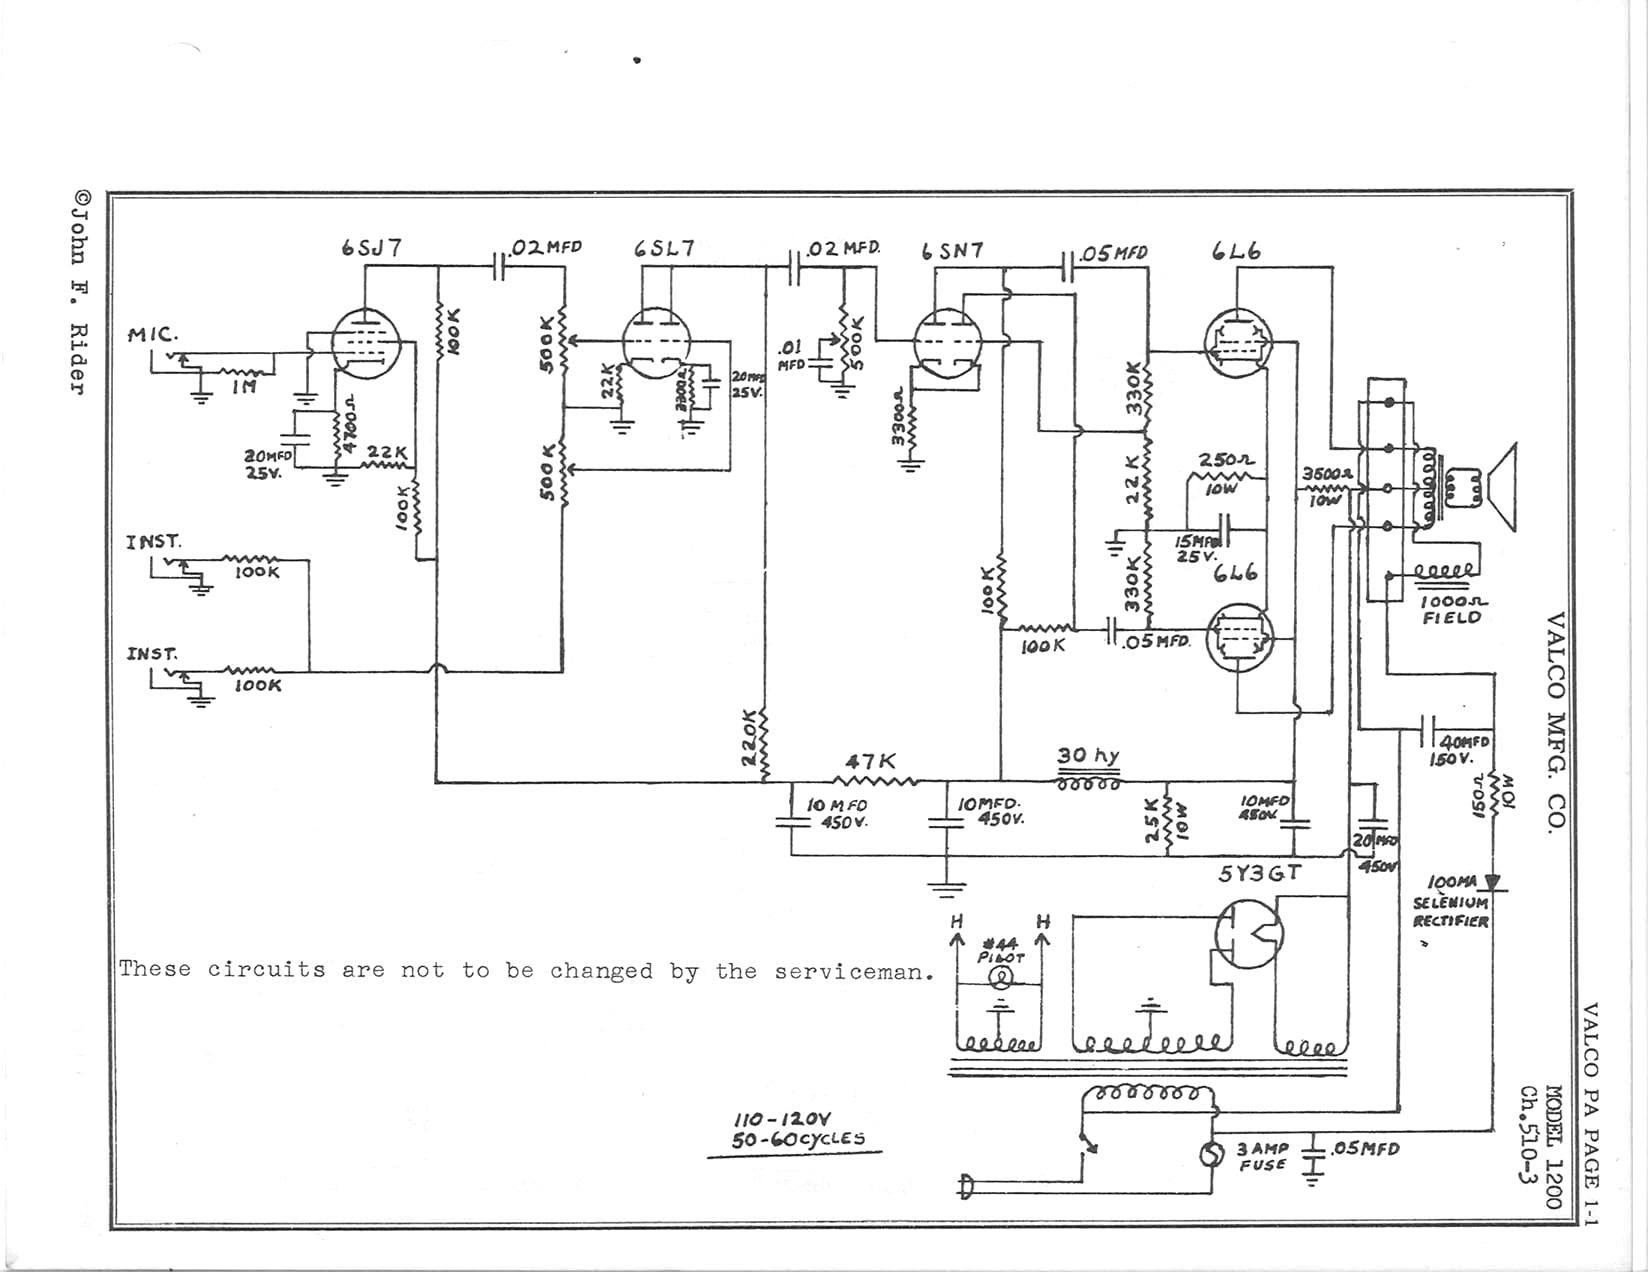 Jp1 Howell Wiring Diagram